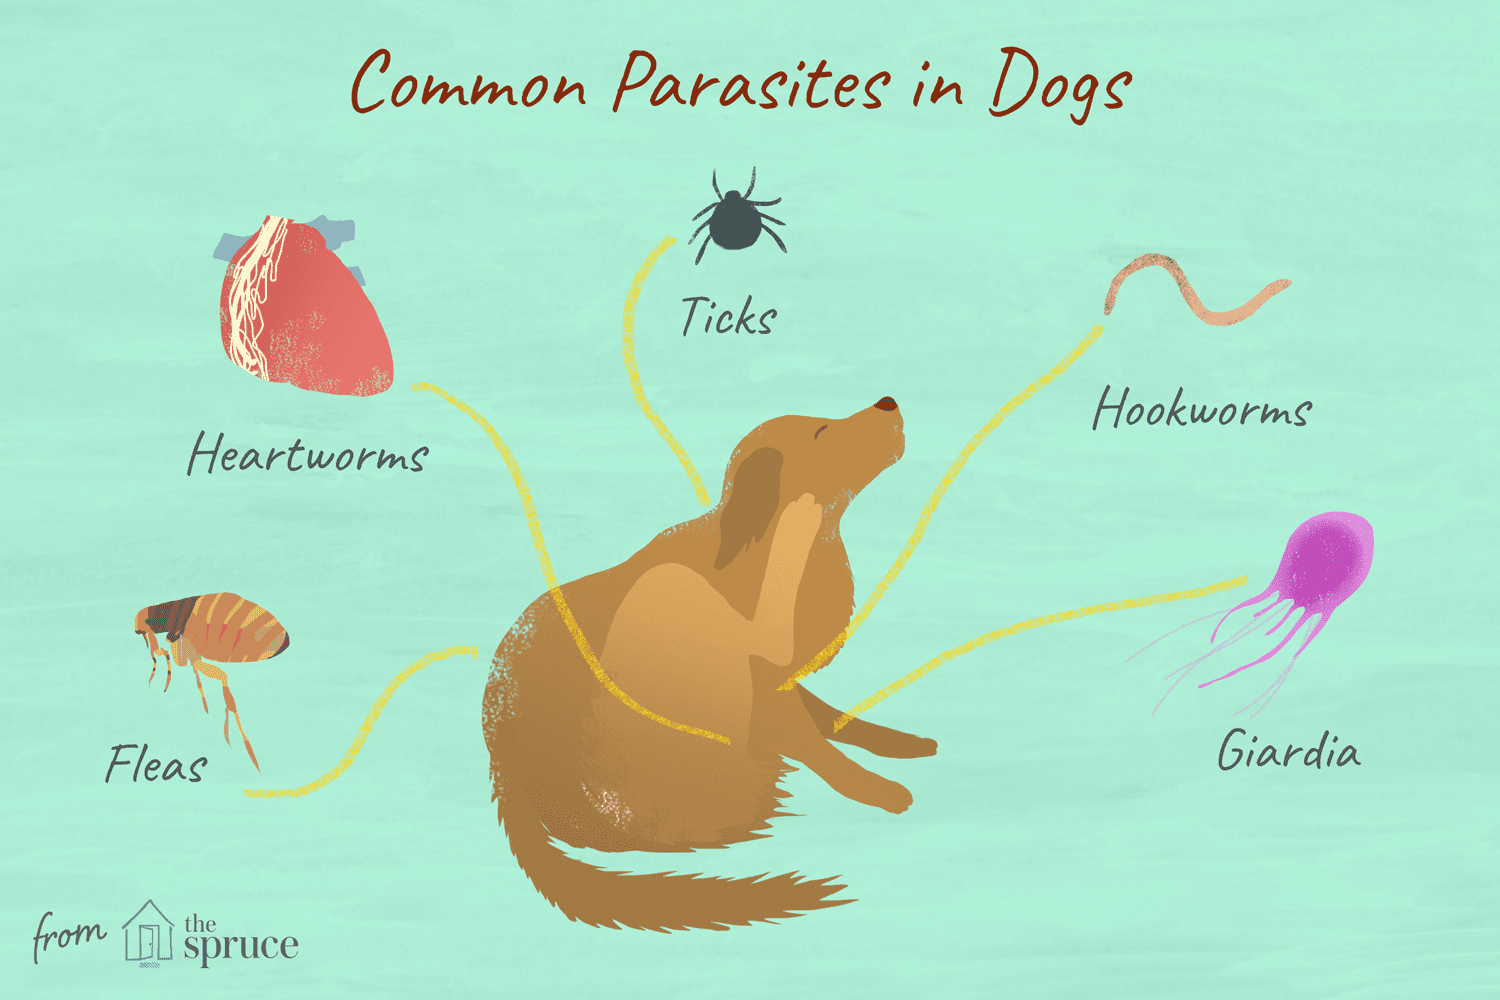 14 Worms Mites Ticks And Other Canine Parasites